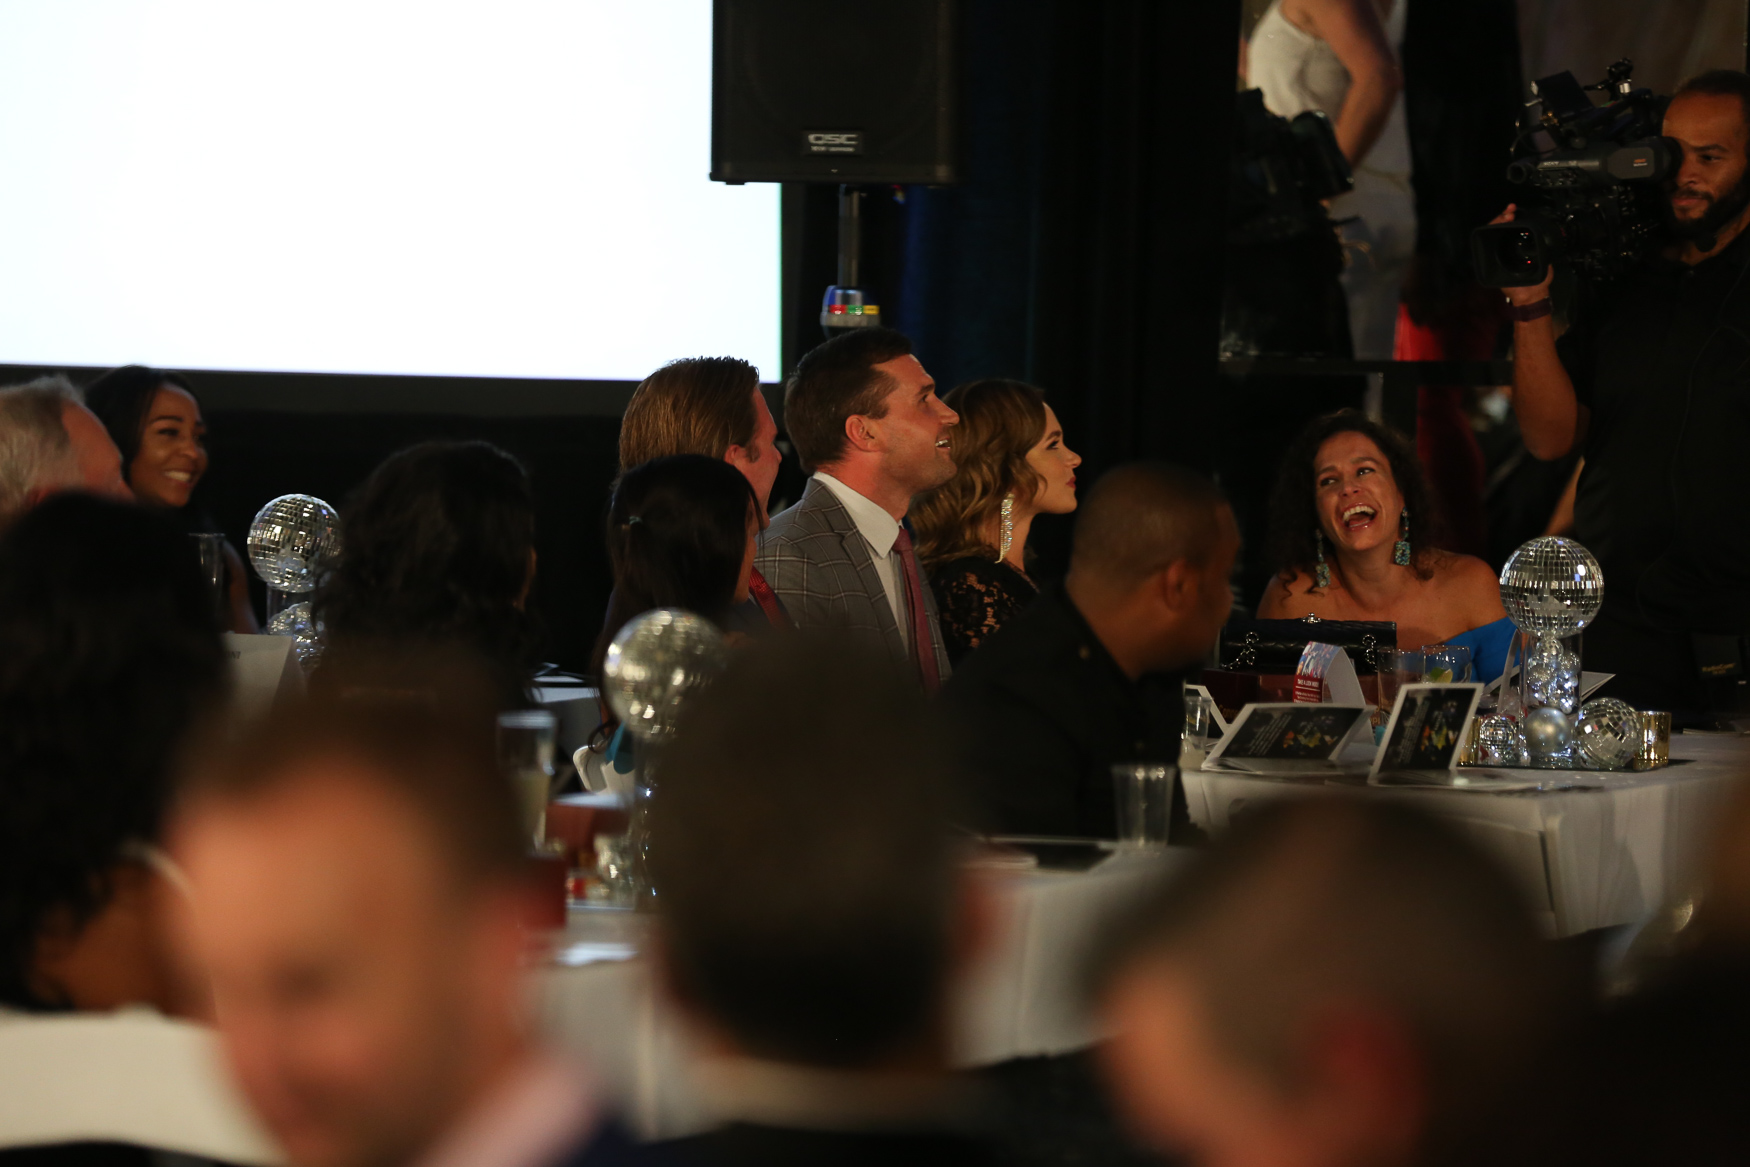 Ryan Zimmerman of the Washington Nationals didn't walk in the runway show, but he did contribute money to the cause.{ }(Amanda Andrade-Rhoades/DC Refined)